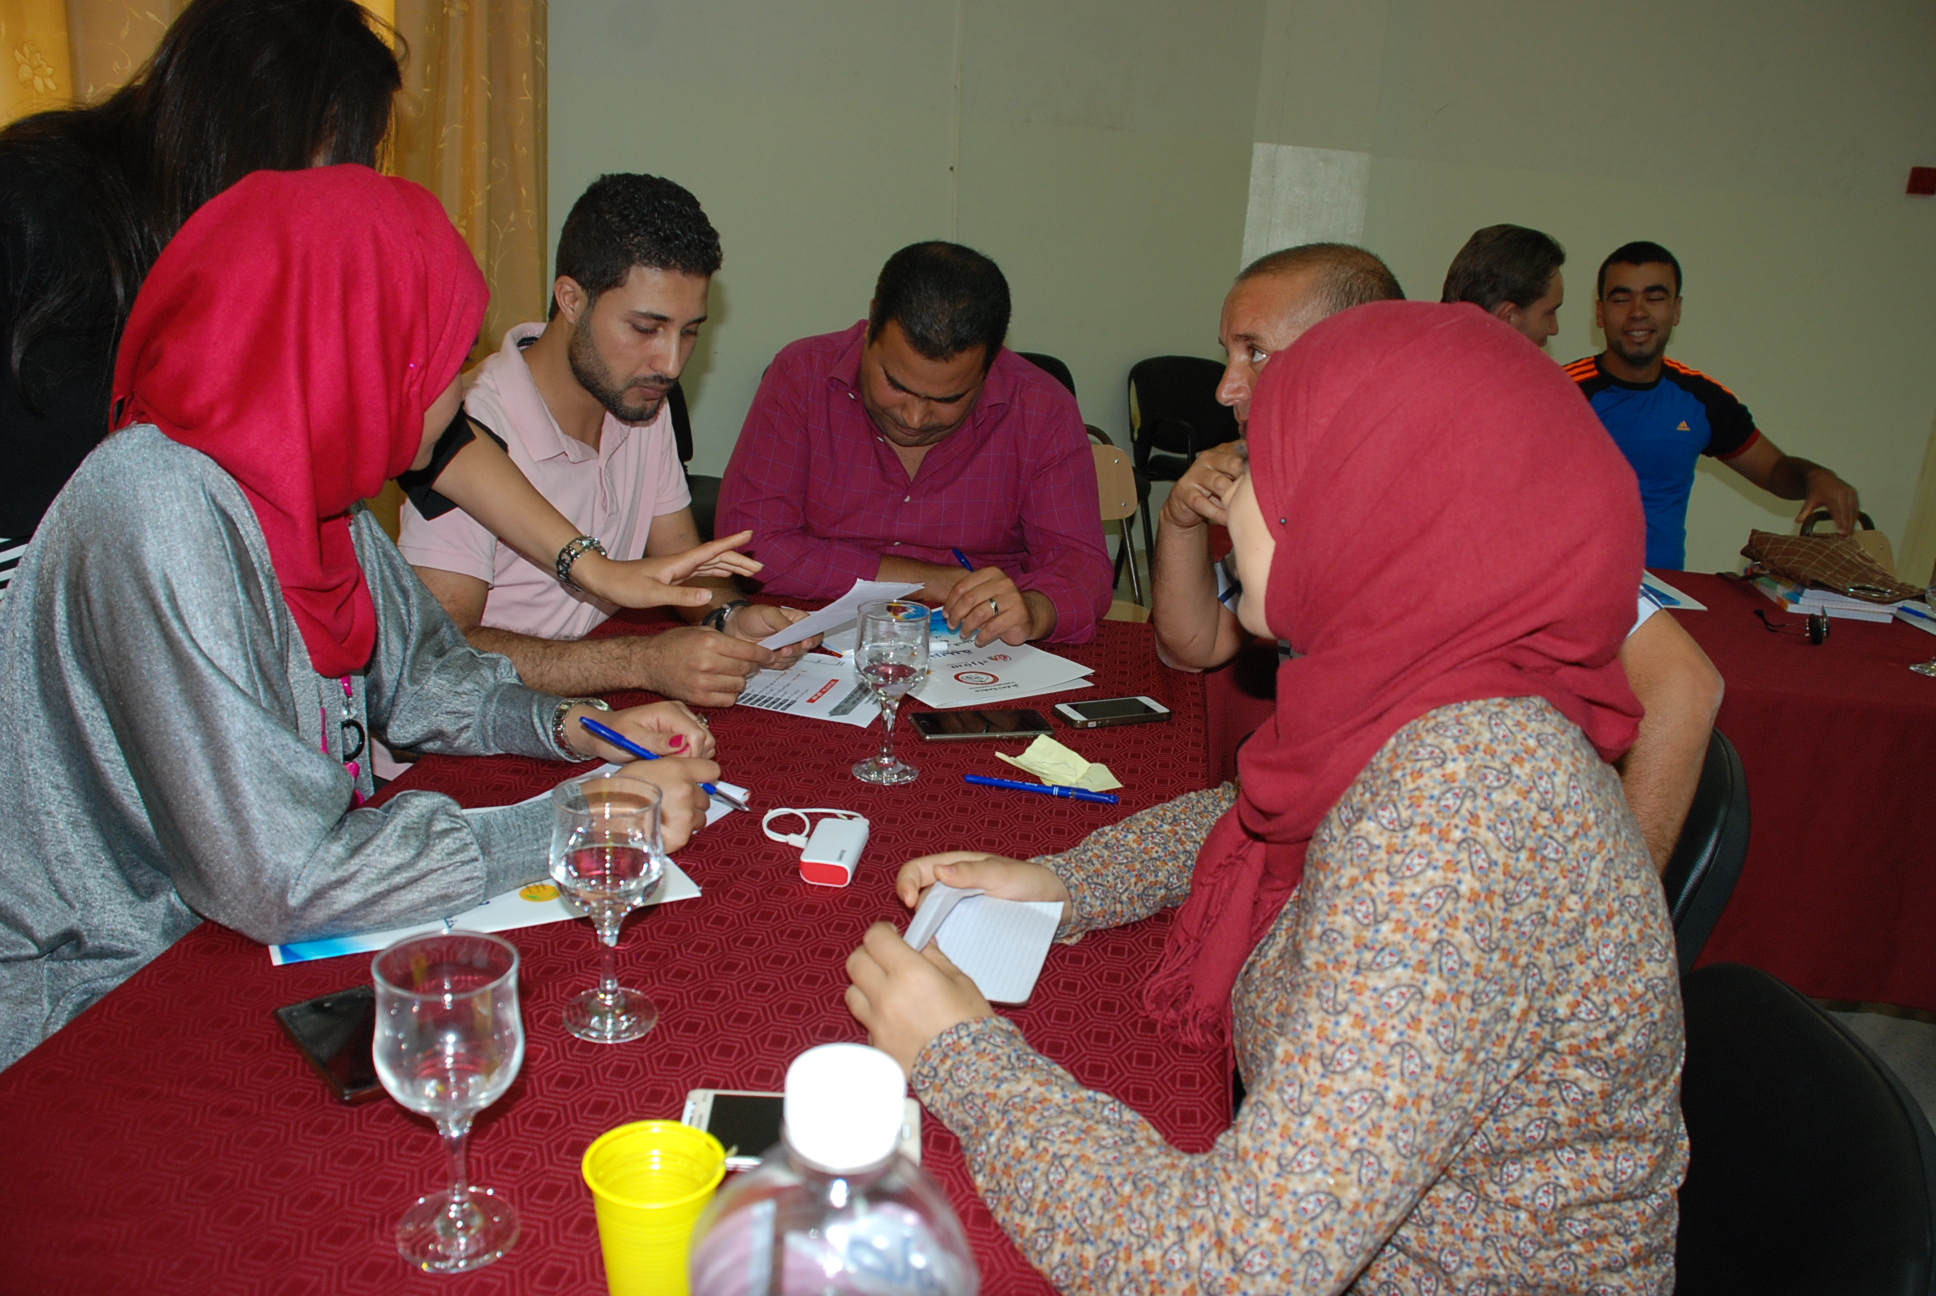 Tunisia Workshop 4 Sept 2016.JPG